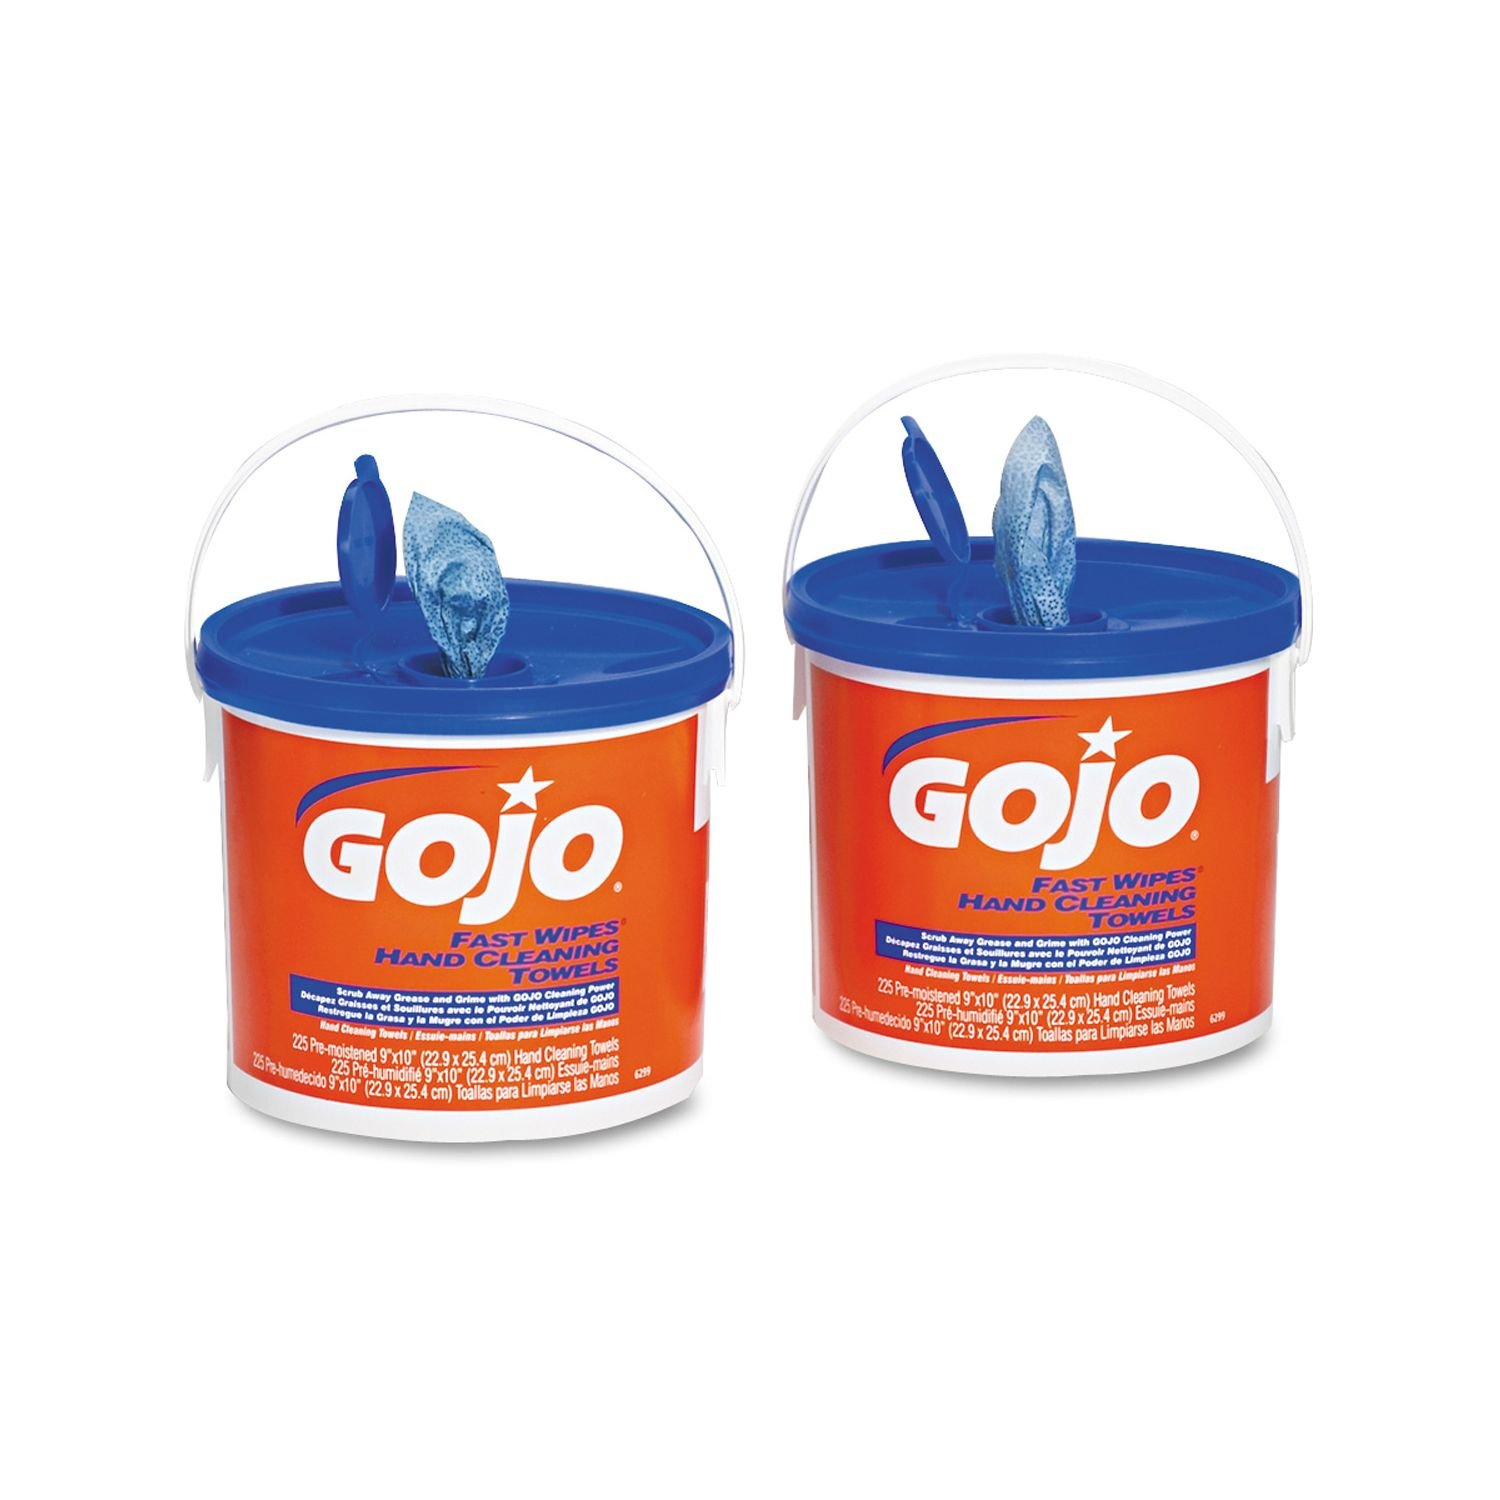 Amazon.com: GOJO - FAST WIPES Hand Cleaning Towels, 9 x 10, White, 225/Bucket - 2 Buckets/Carton: Sports & Outdoors